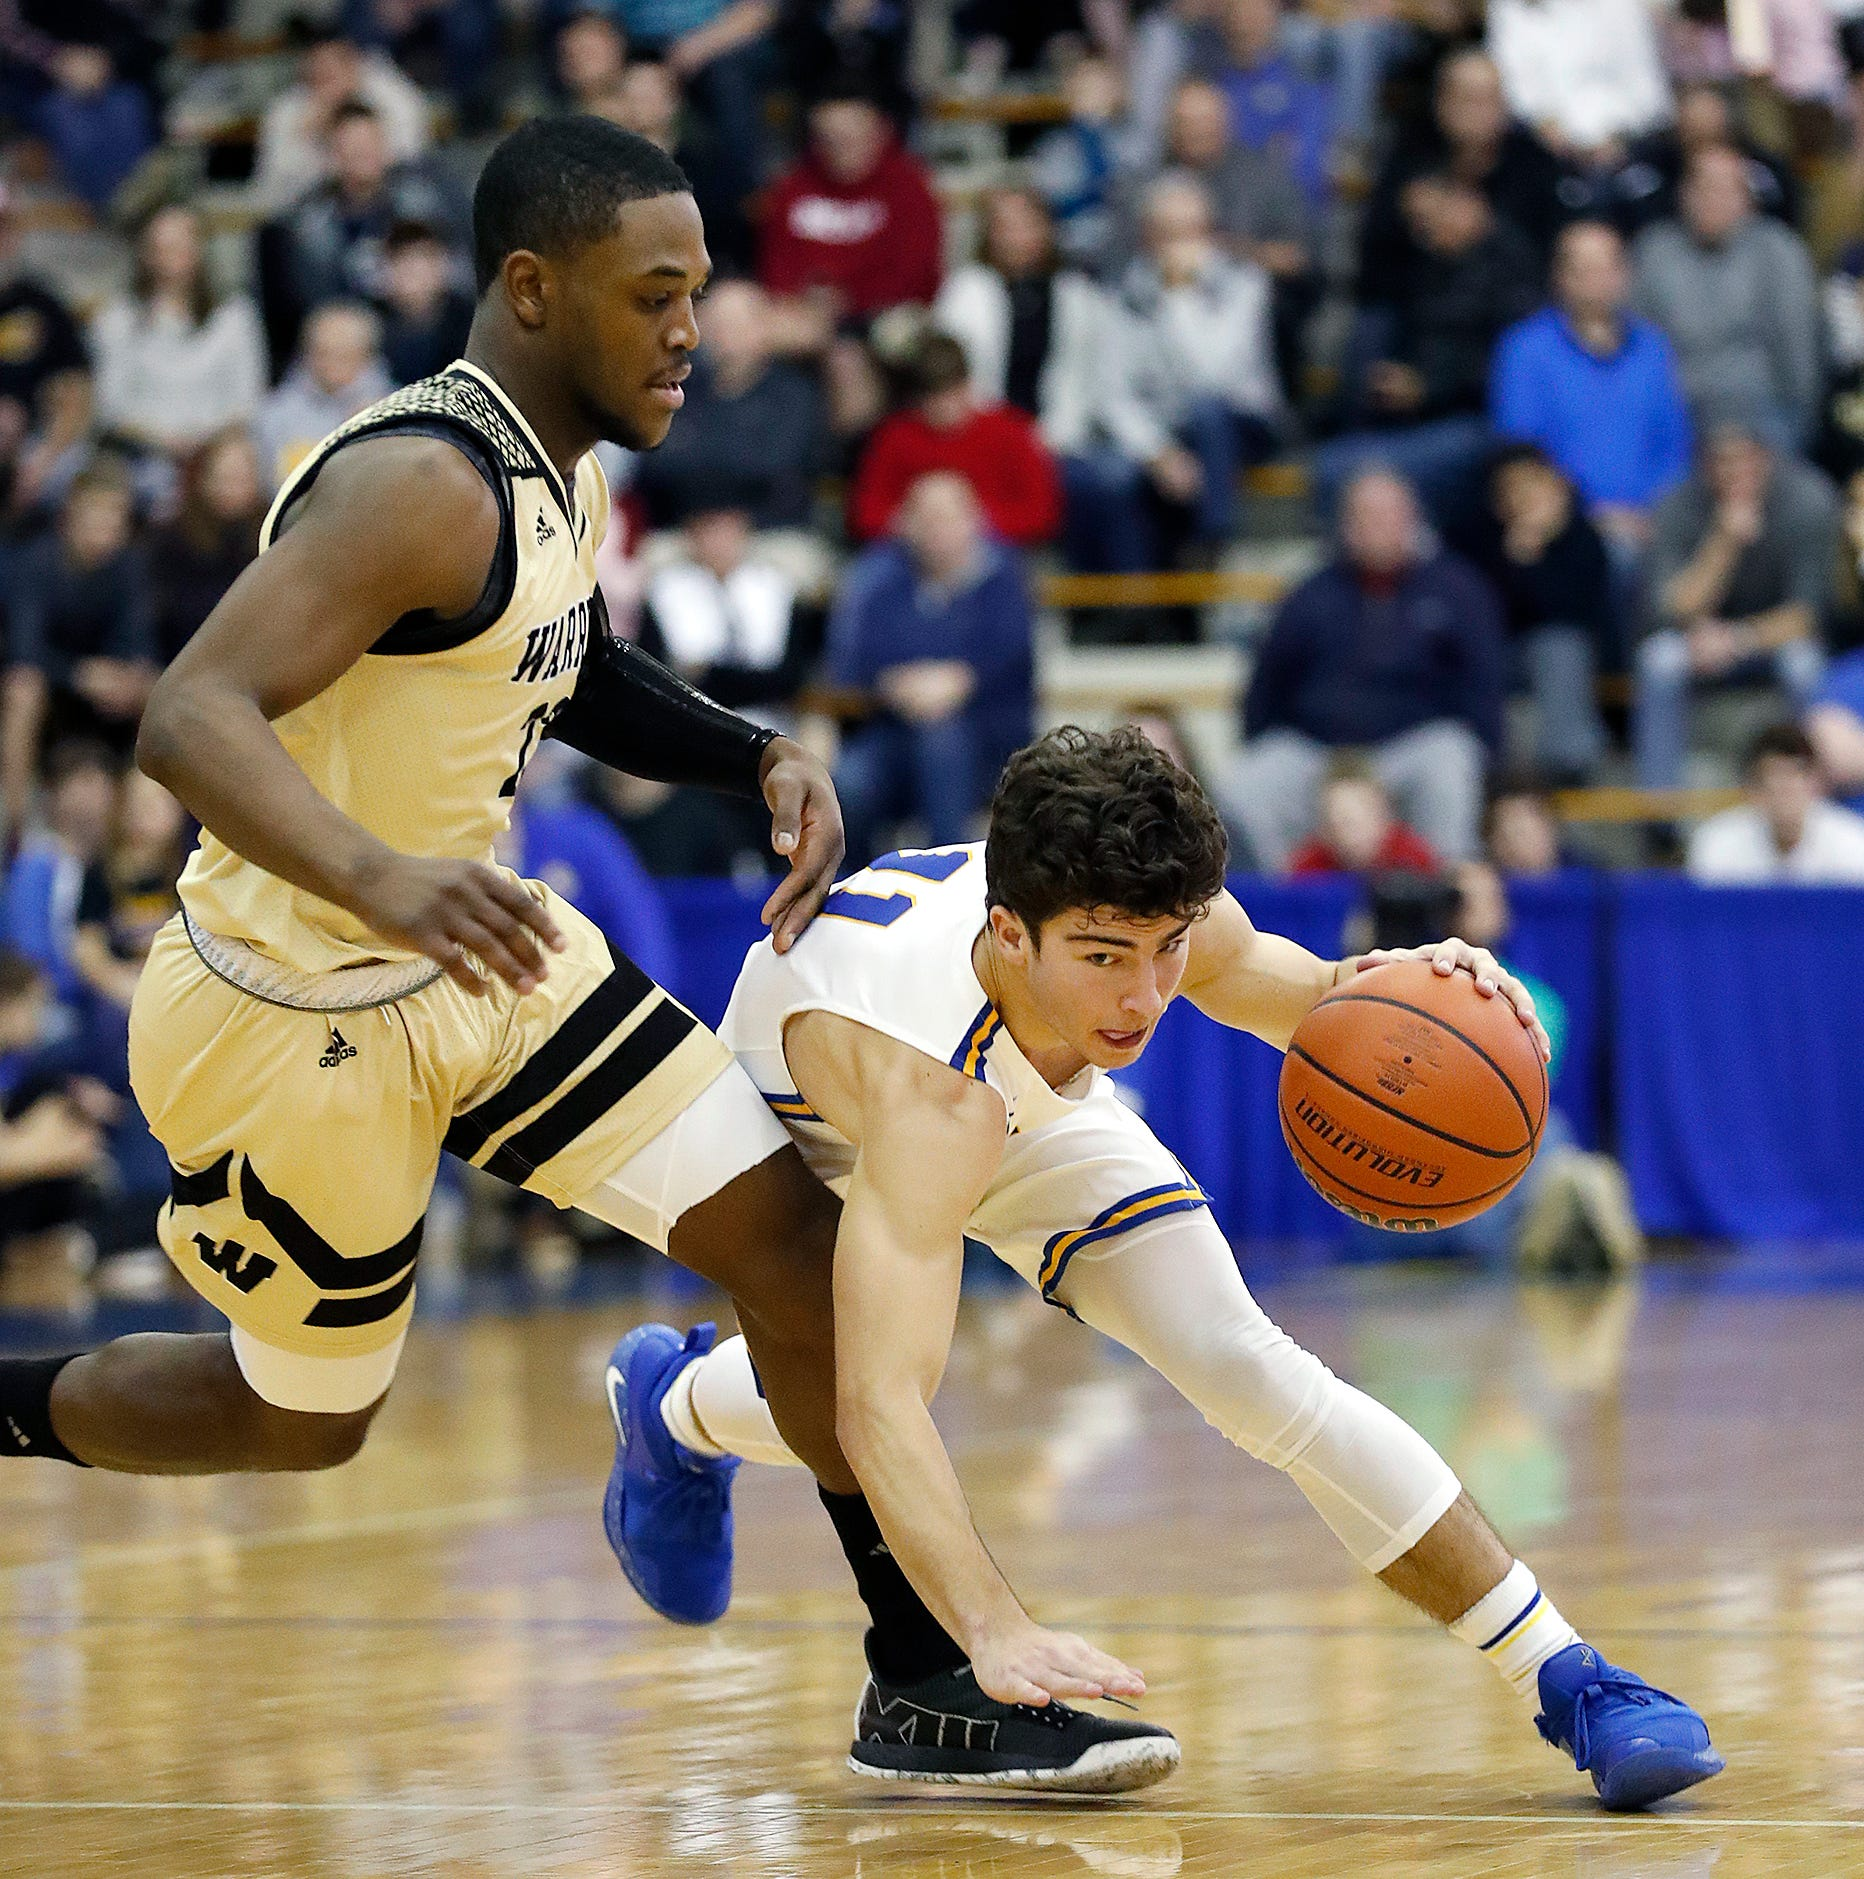 Indy-area HS boys basketball roundup, Feb. 15